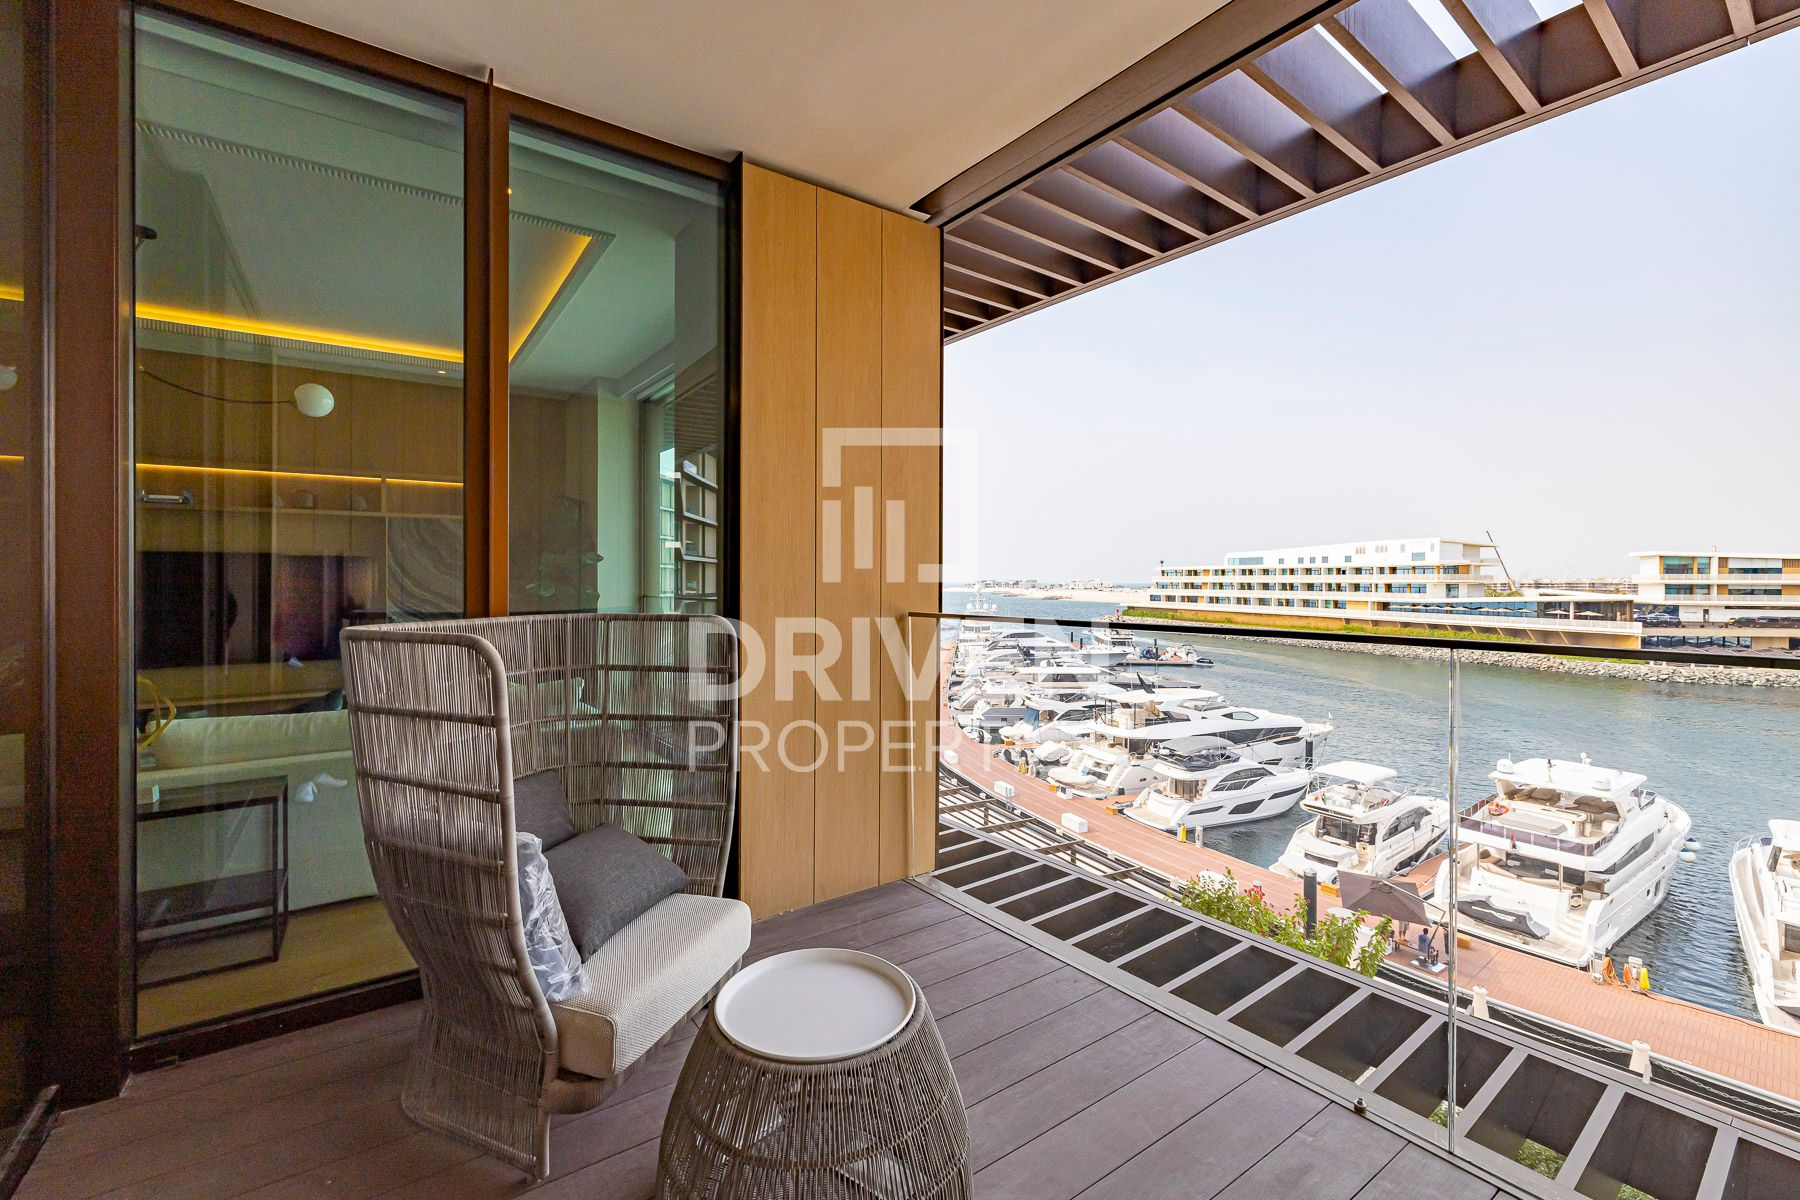 Elegant High End Furniture with Marina View